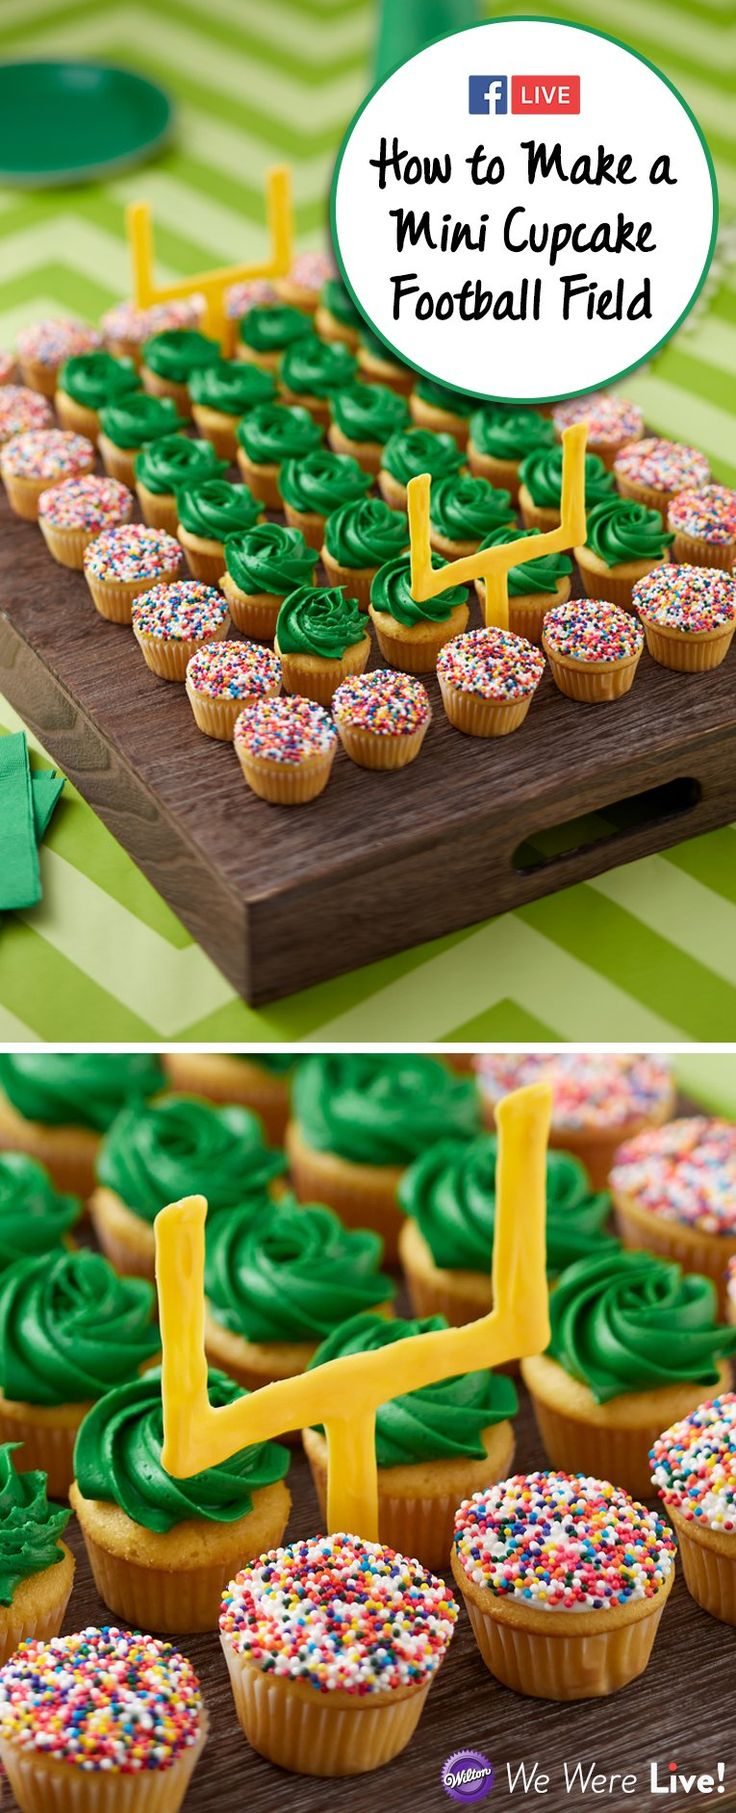 Learn how to make a cute football field made of mini cupcakes! This project is so easy to make and will surely impress your guests at your game day party. Click to watch our Facebook Live now!